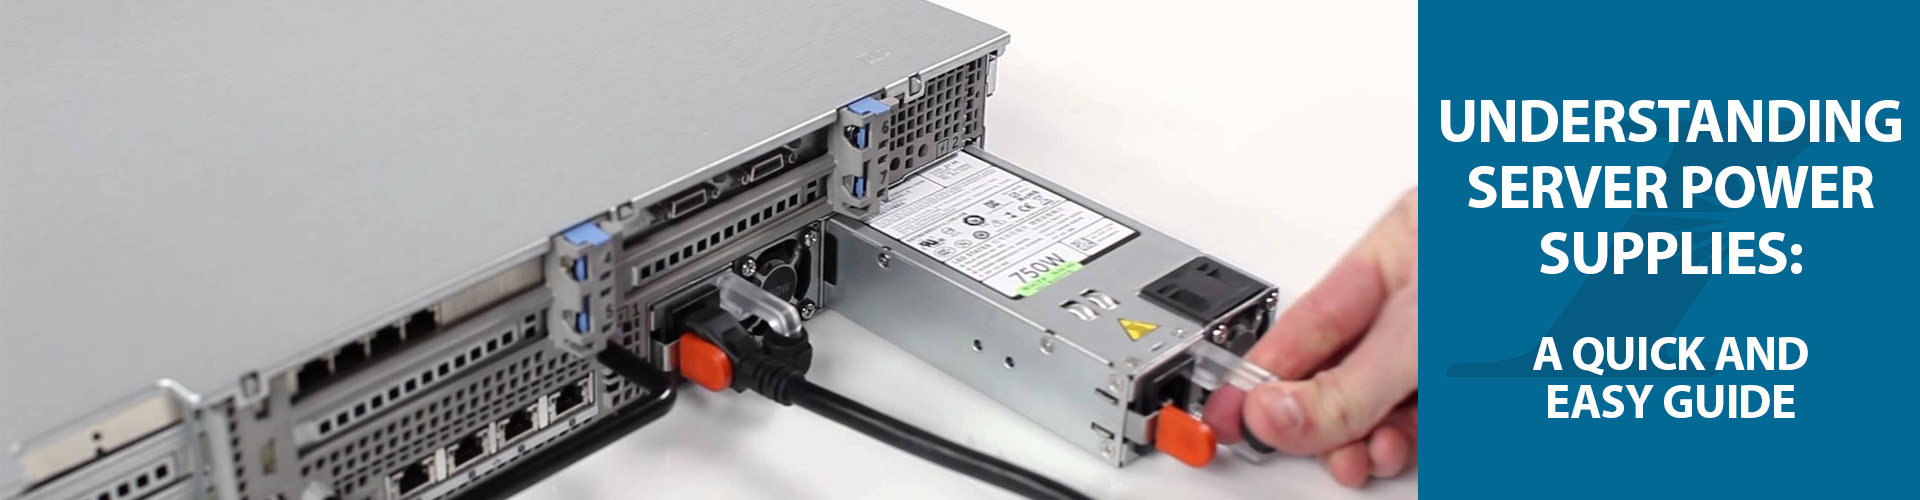 Understanding Server Power Supplies: A Quick and Easy Guide